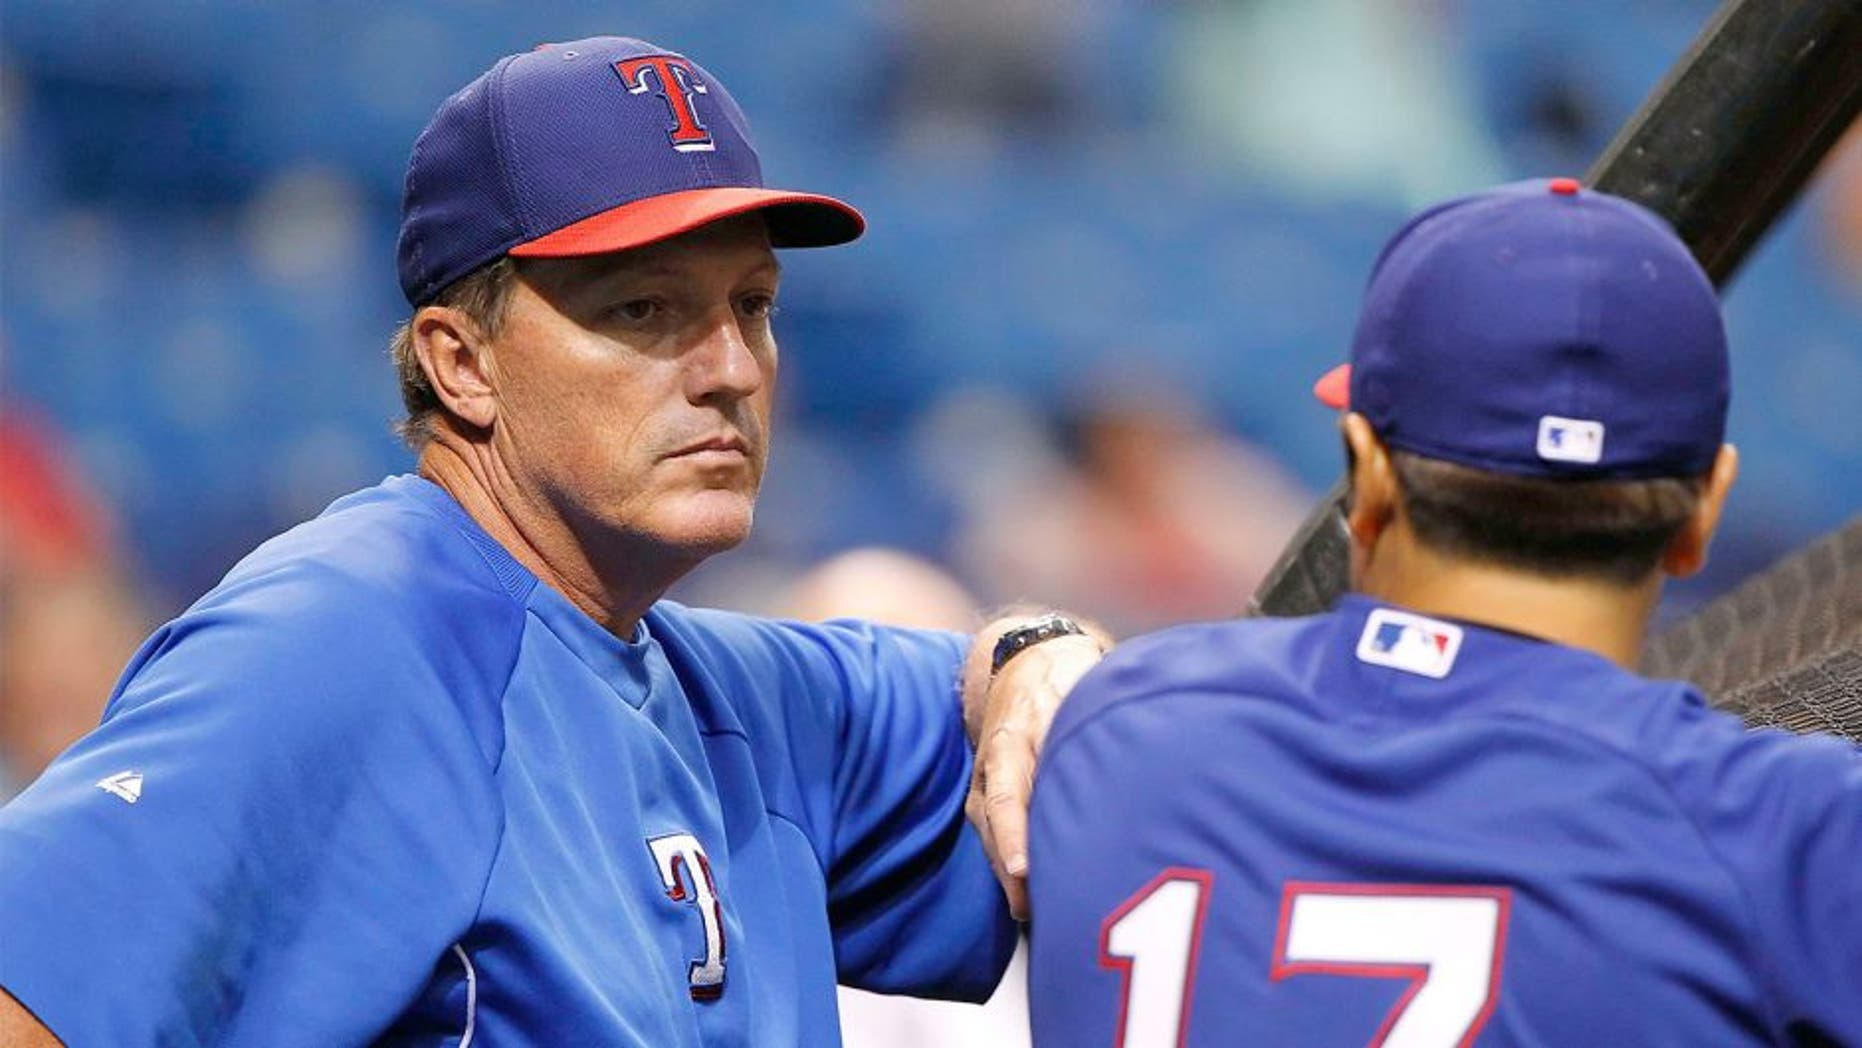 Apr 4, 2014; St. Petersburg, FL, USA; Texas Rangers batting coach Dave Magadan (14) talks with left fielder Shin-Soo Choo (17) prior to the game against the Tampa Bay Rays at Tropicana Field. Mandatory Credit: Kim Klement-USA TODAY Sports